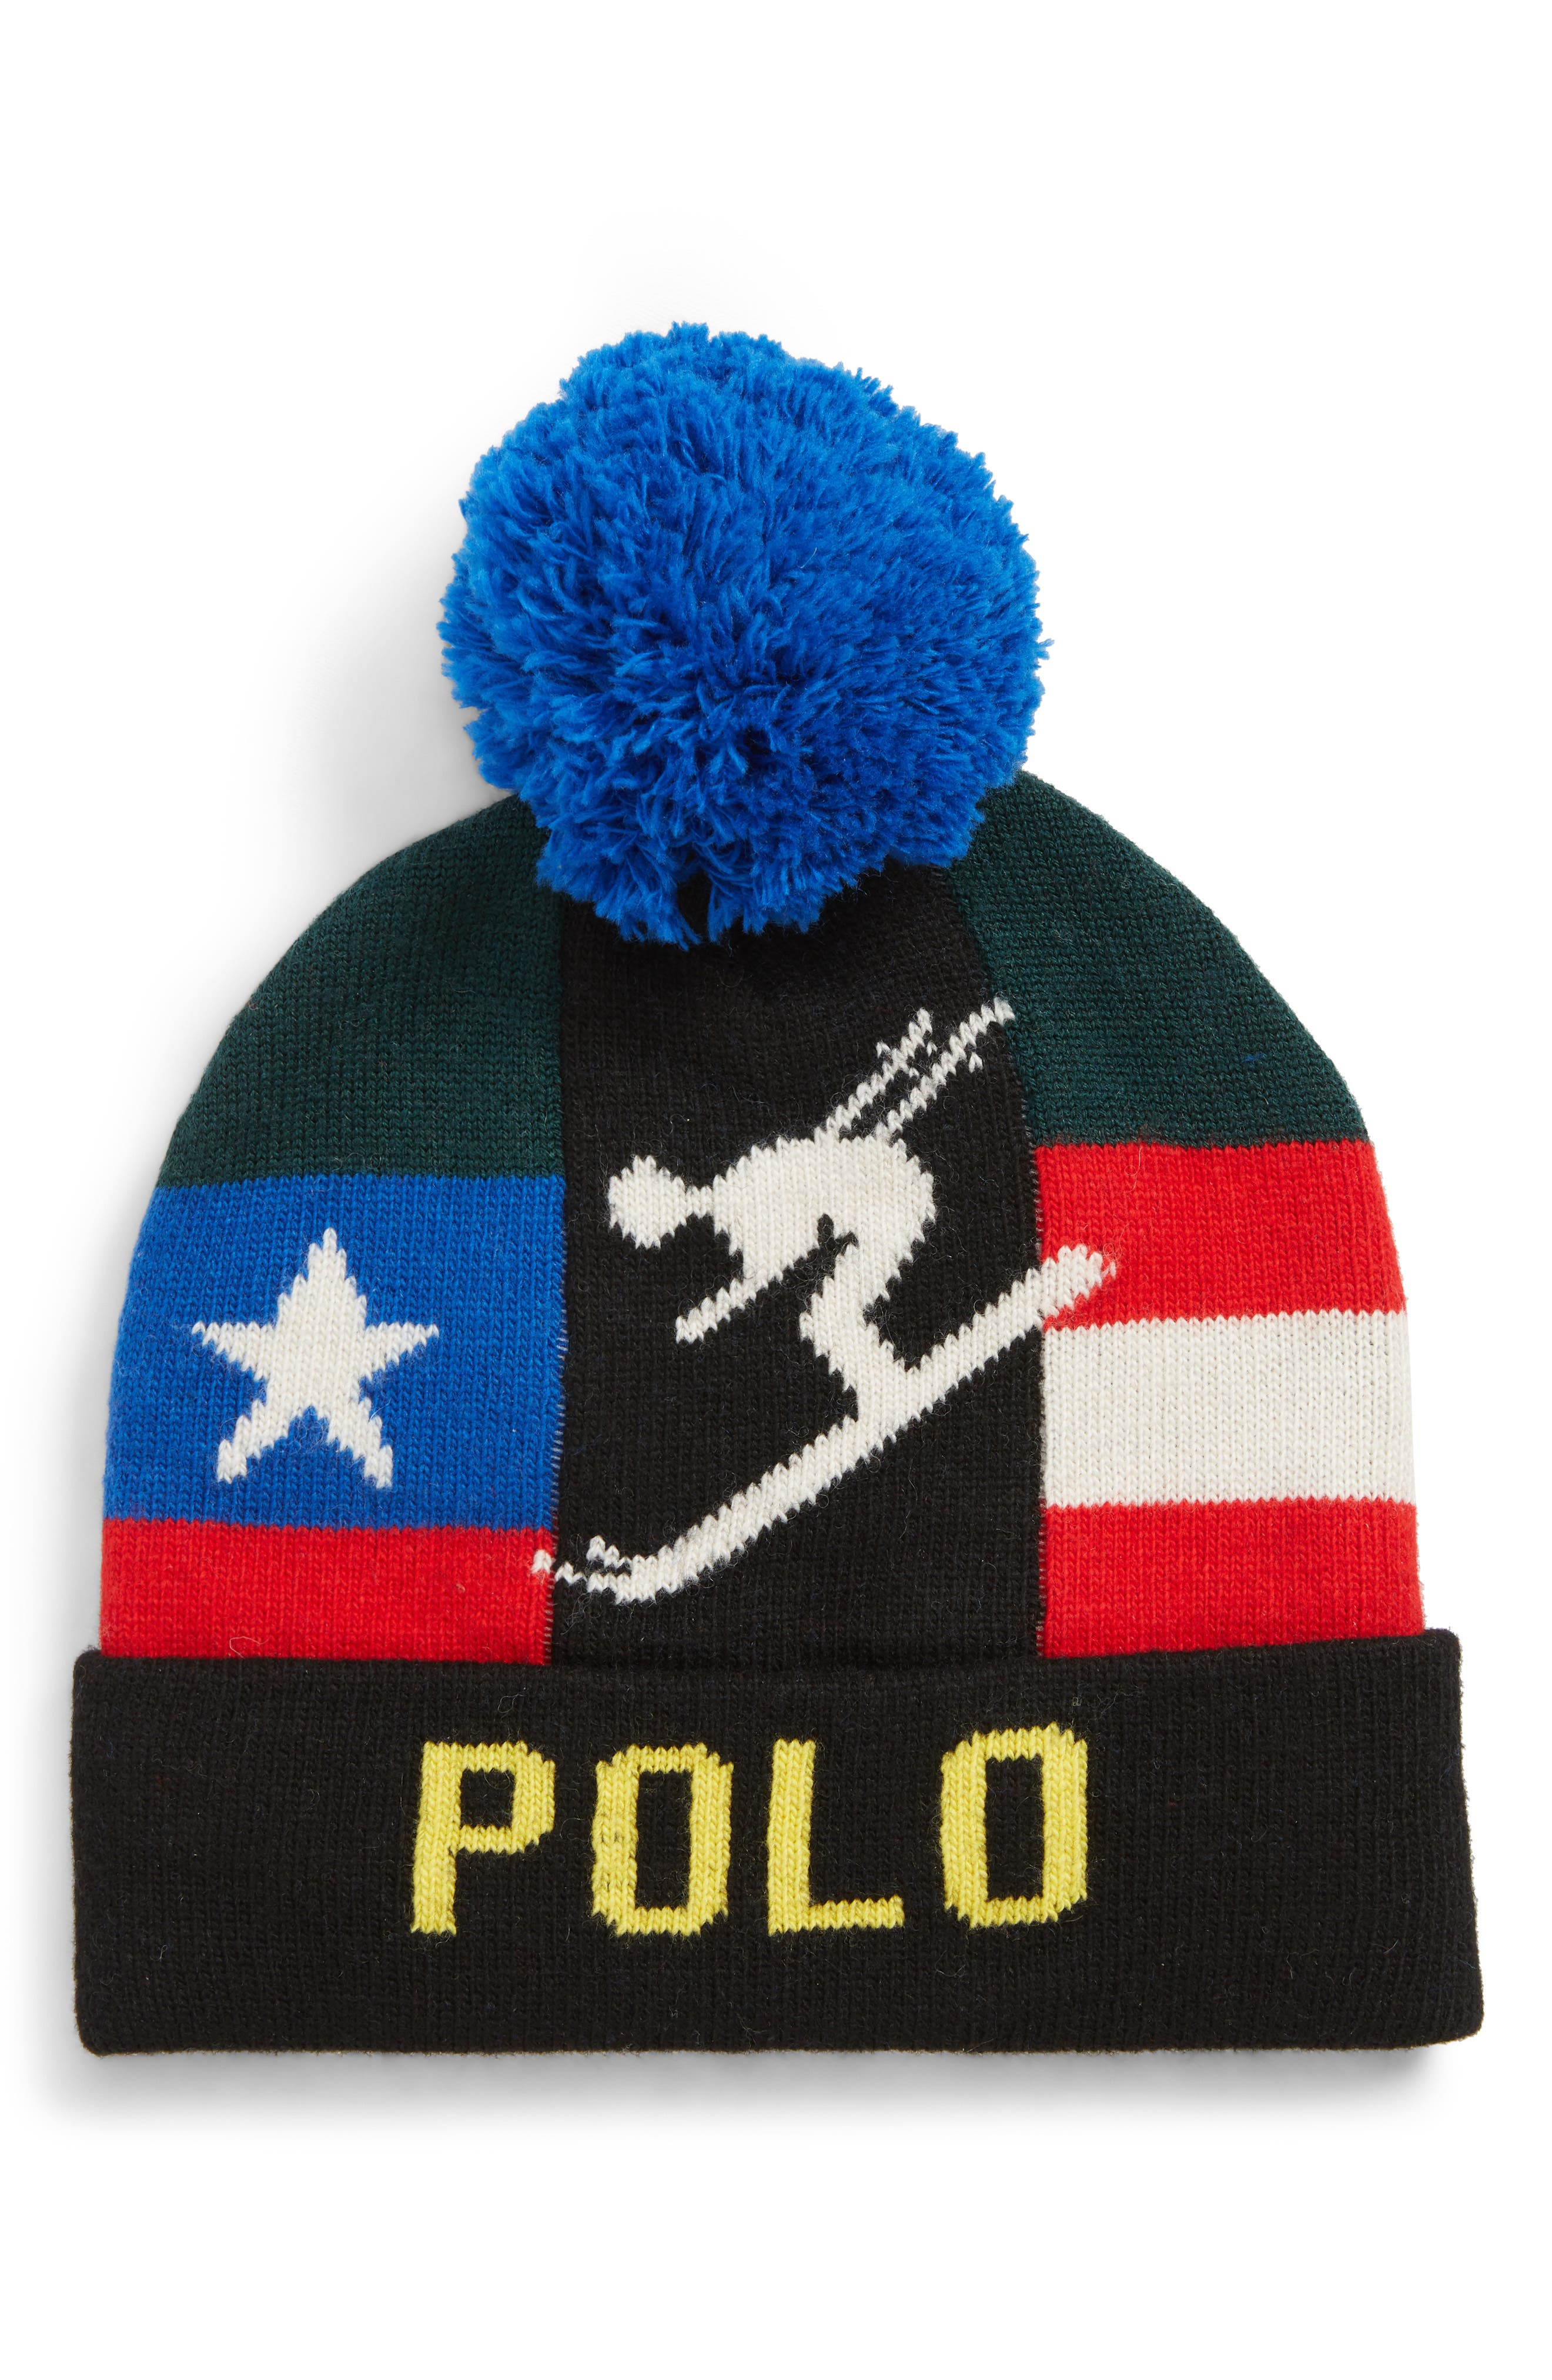 Downhill Skier Pom Beanie,                             Main thumbnail 1, color,                             001